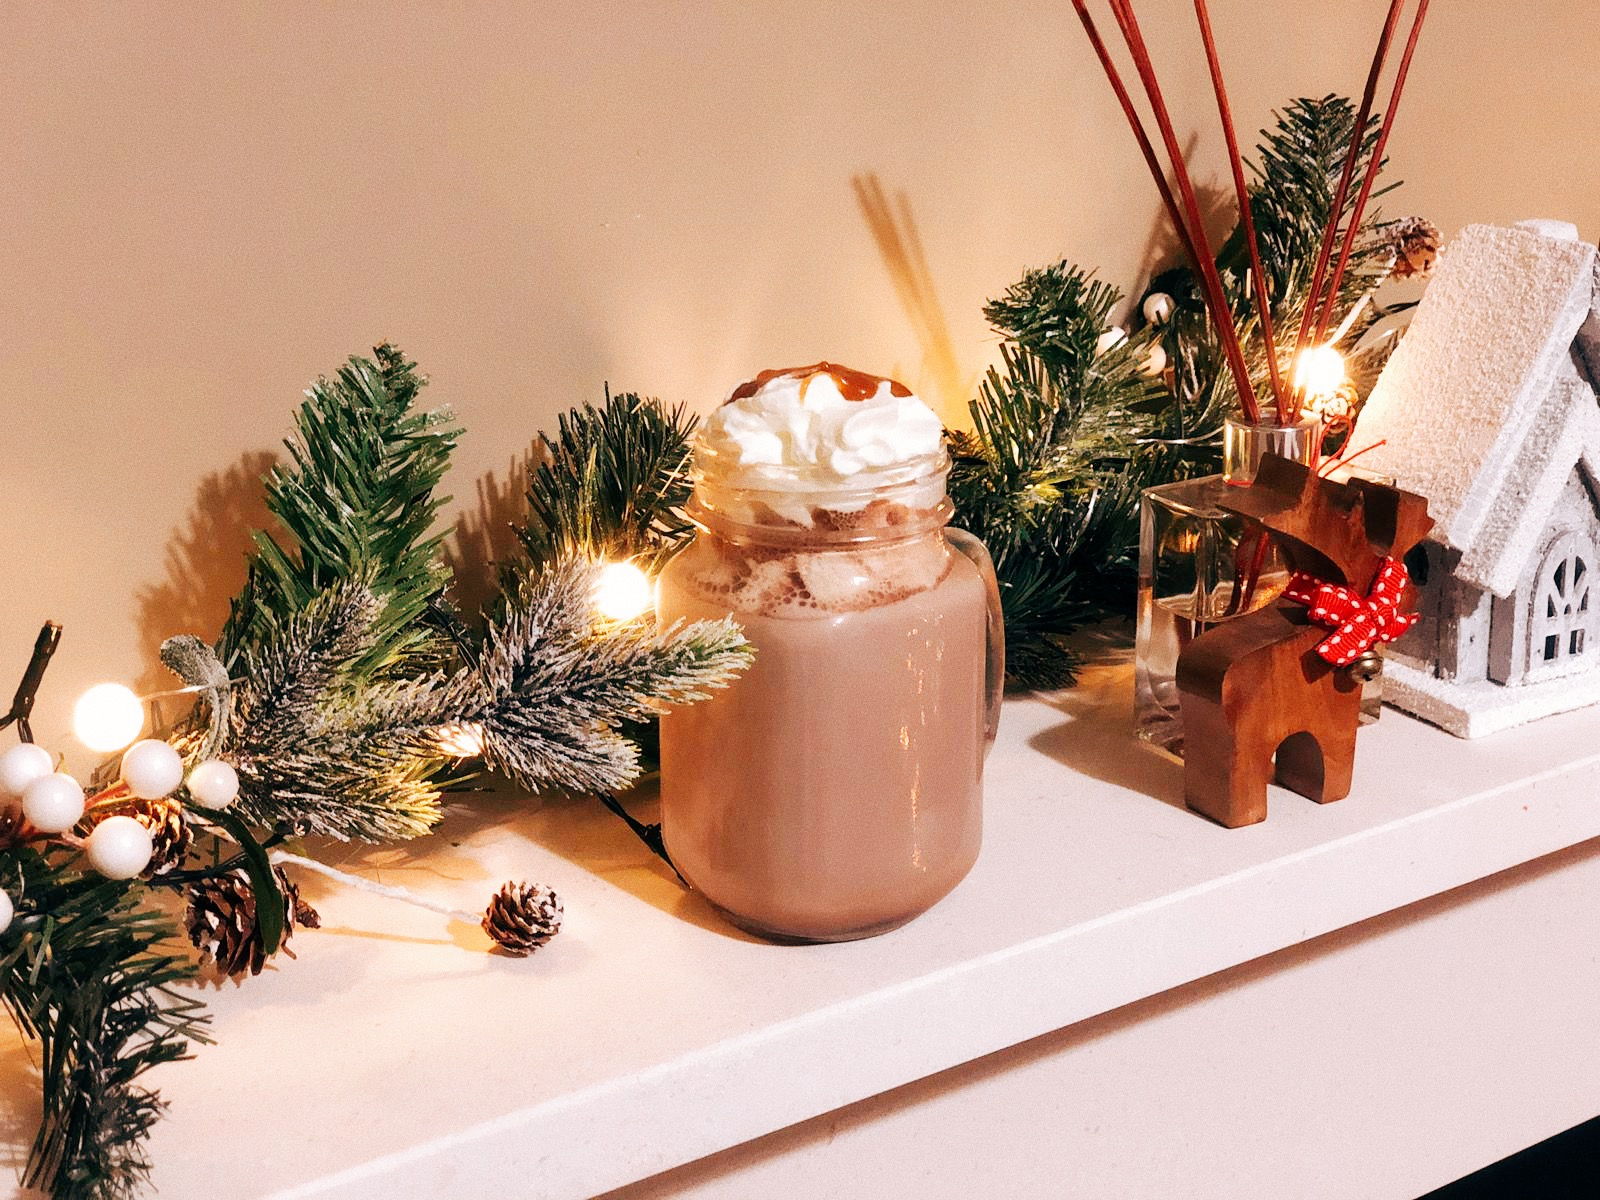 Hot chocolate with whipped cream on a decorated mantle piece